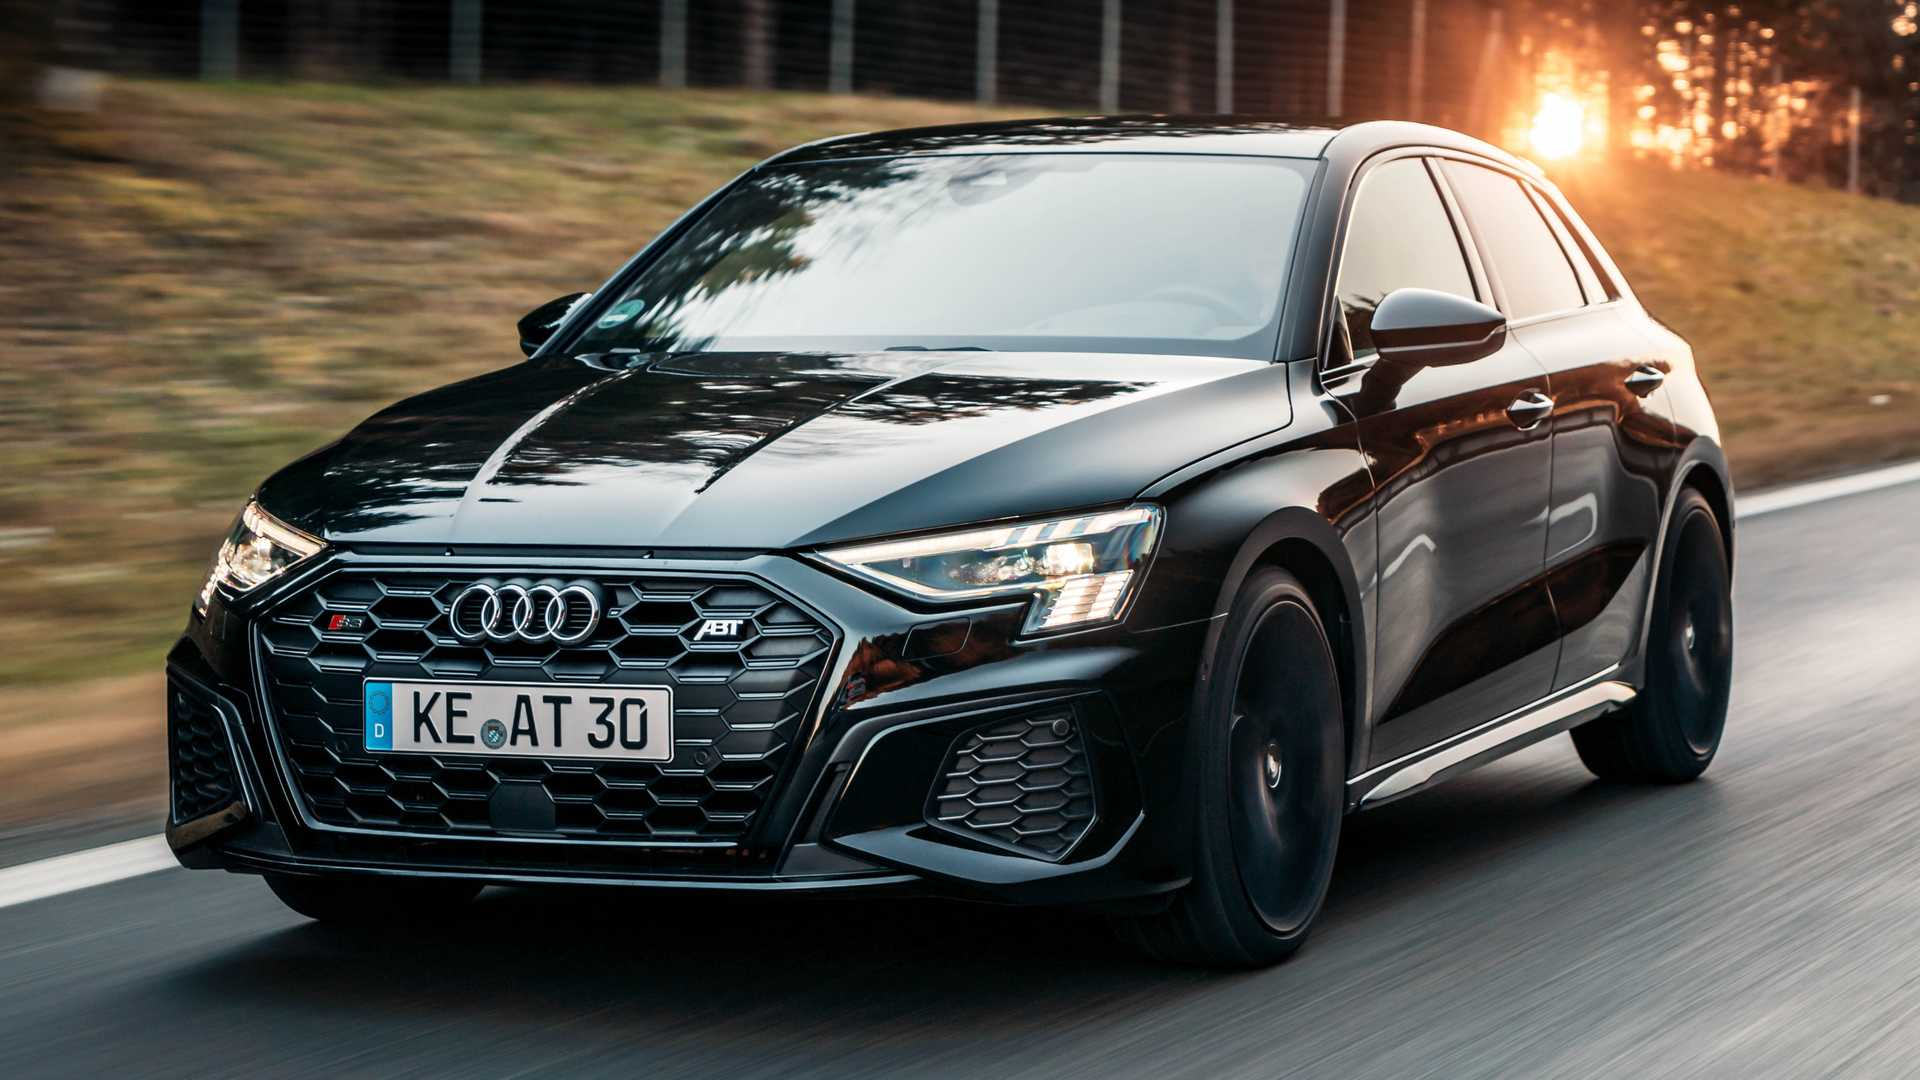 2021 Audi S3 Tuned By Abt To Nearly Rs3 Level Of Power